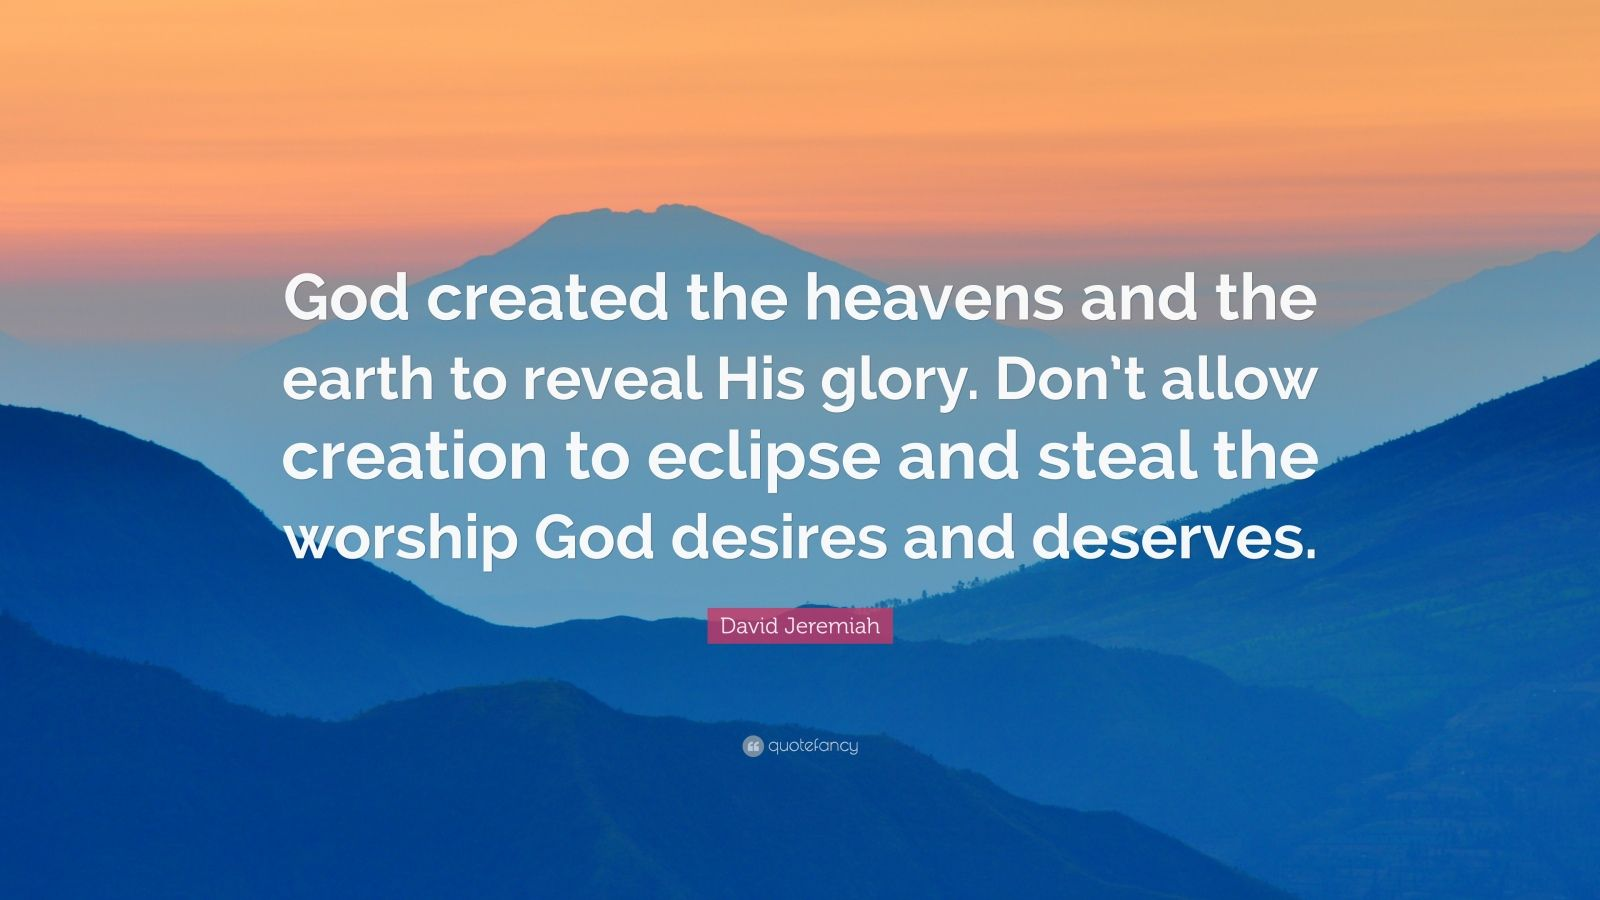 """David Jeremiah Quote: """"God created the heavens and the earth to reveal His glory. Don't allow creation to eclipse and steal the worship God desires and deserves."""""""